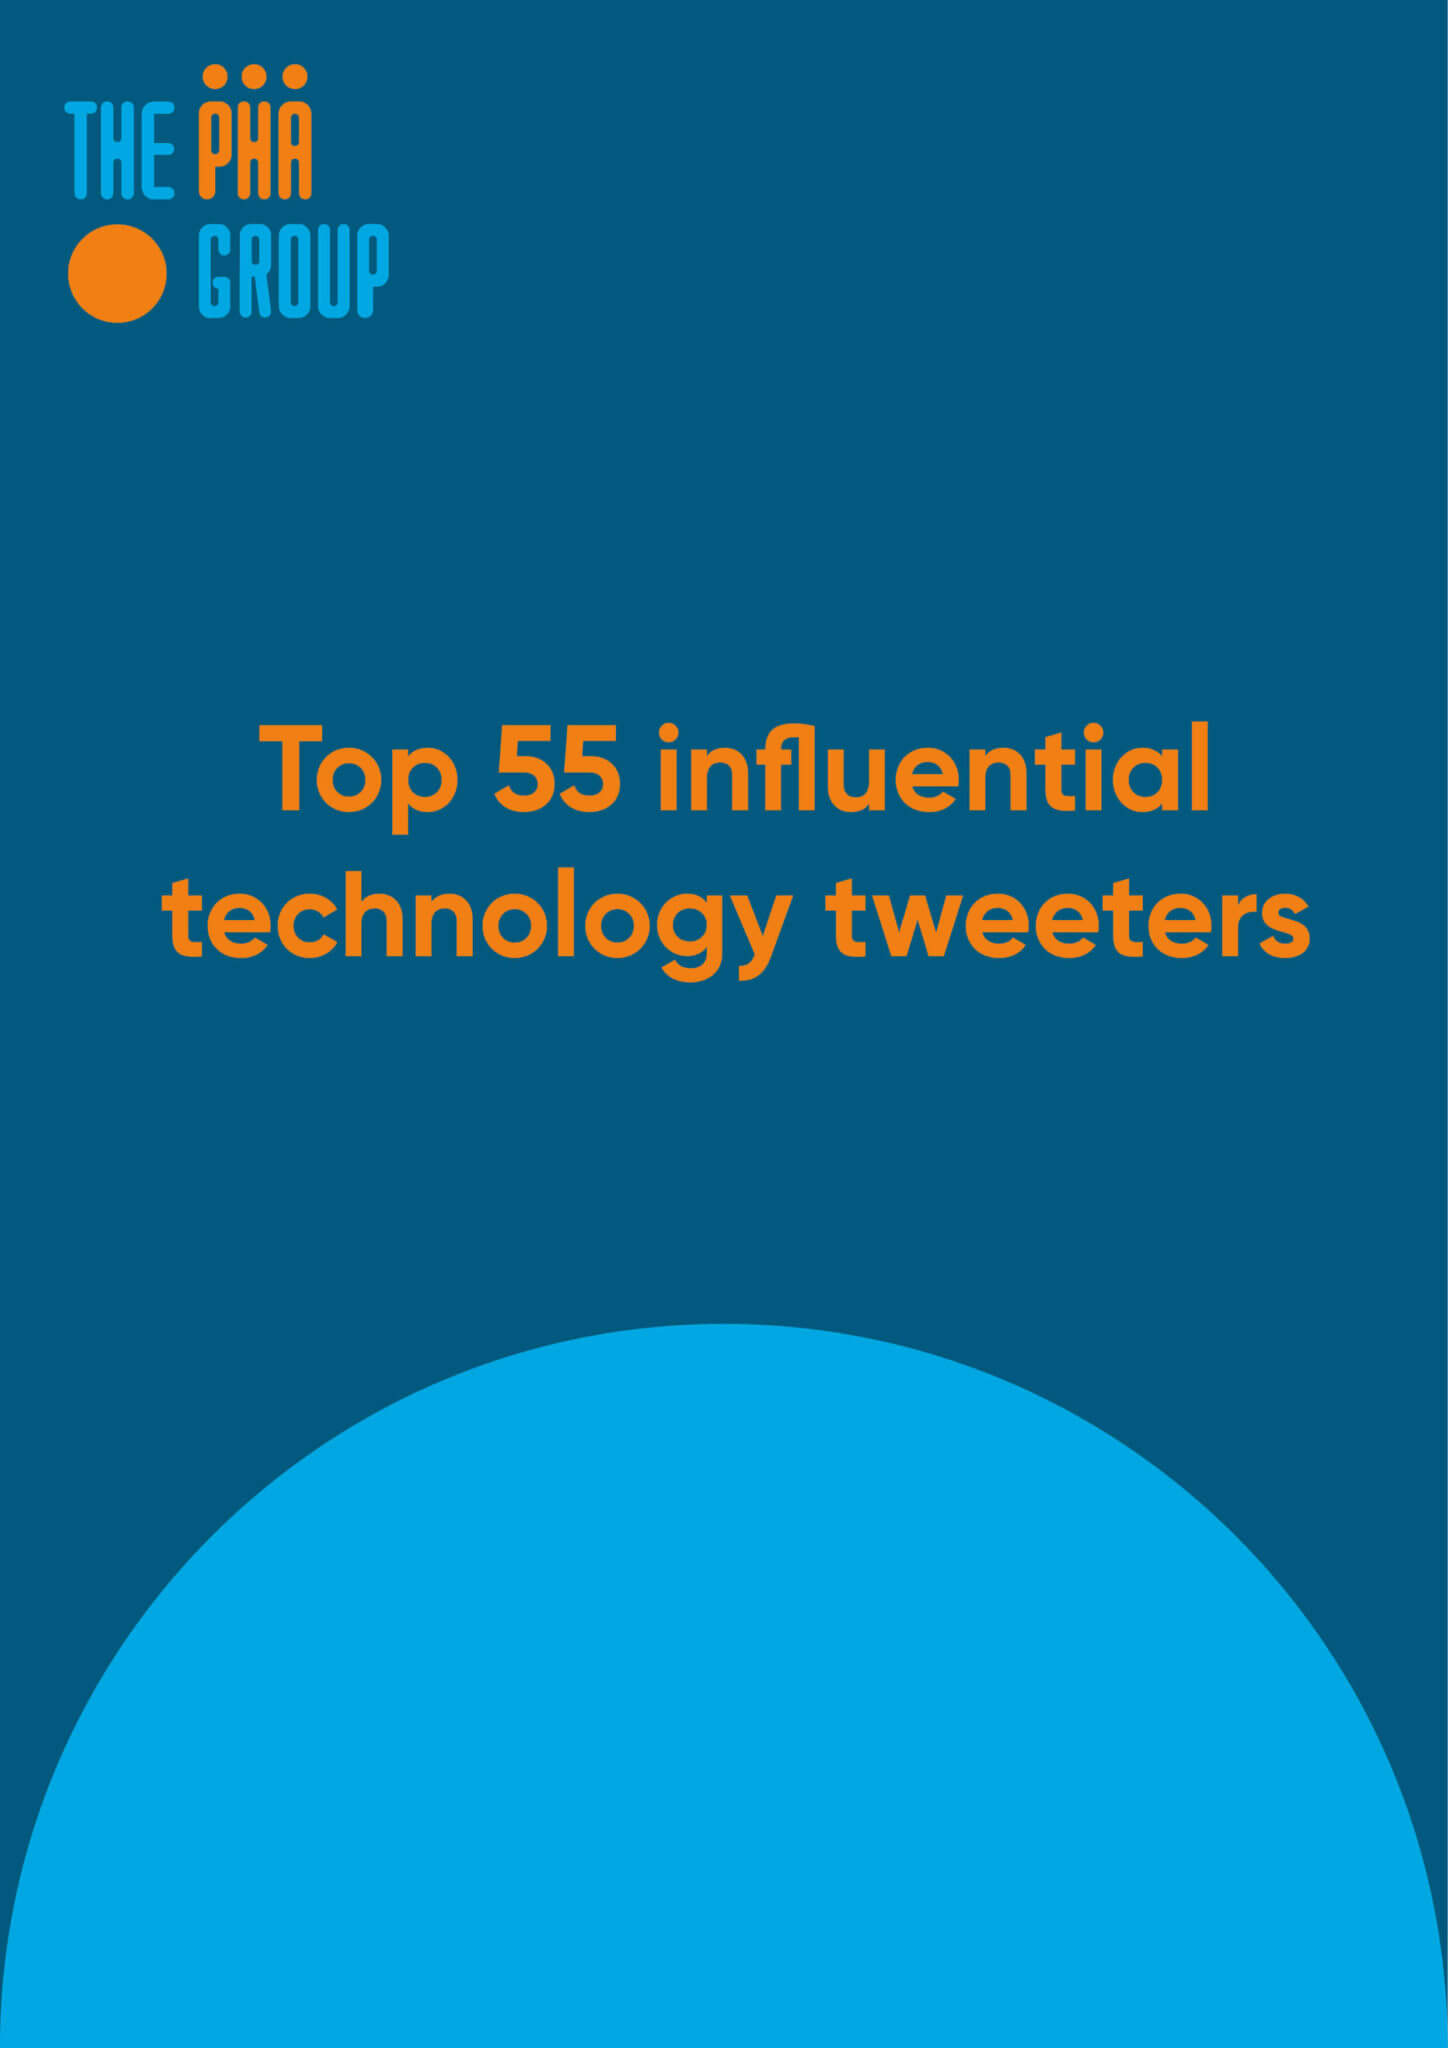 Top 55 influential tech tweeters